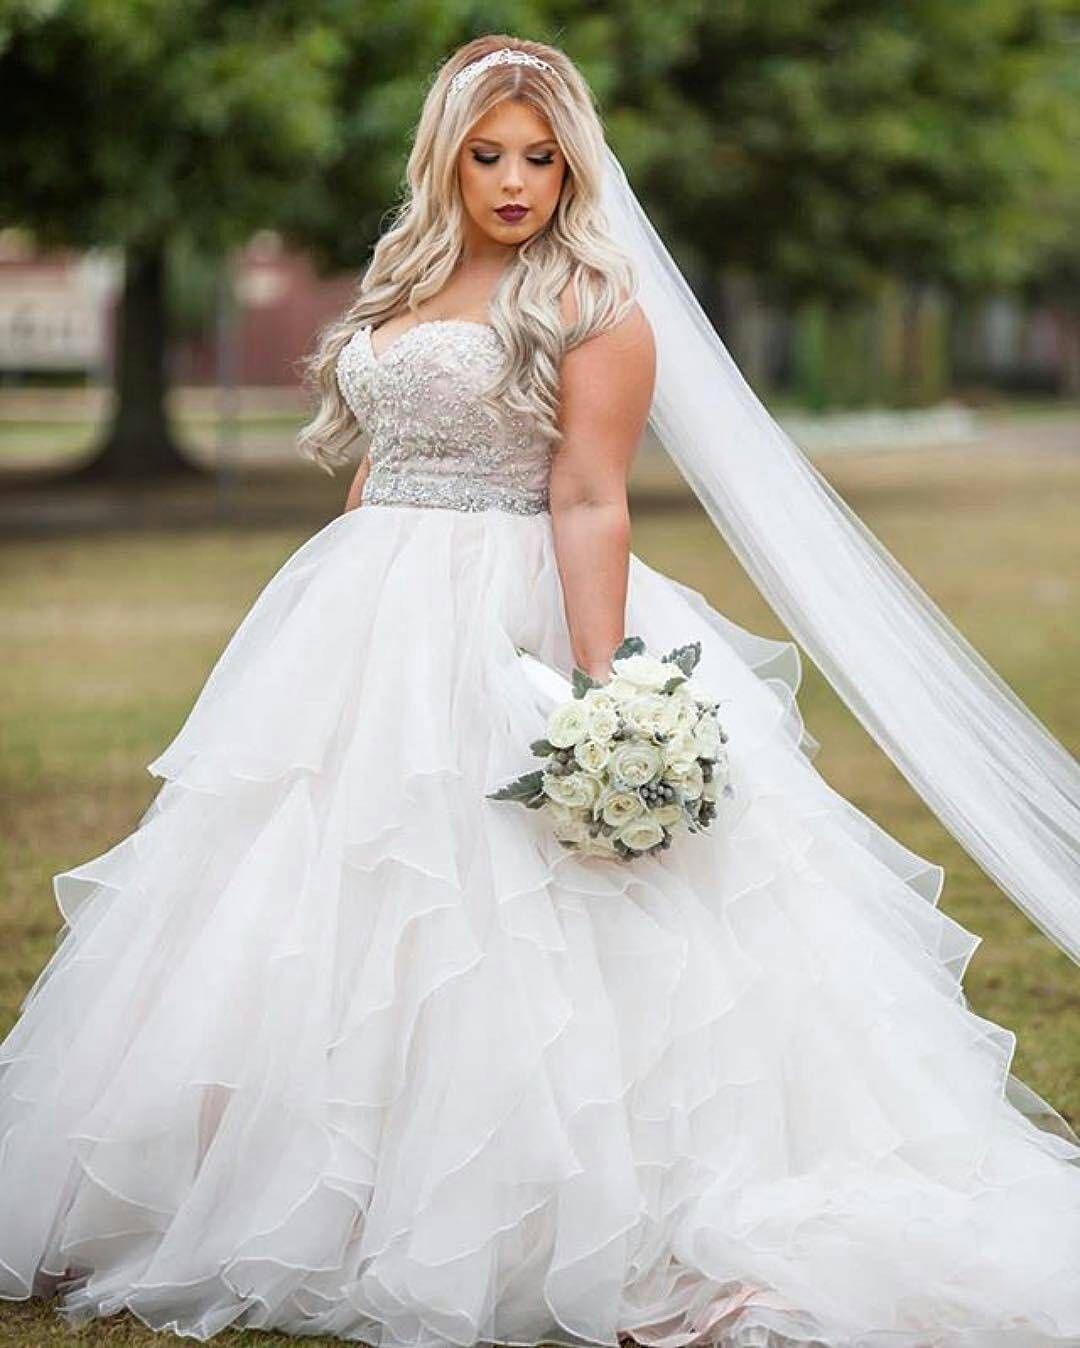 Sydney plus size wedding dresses - Elegant Plus Size Wedding Dresses